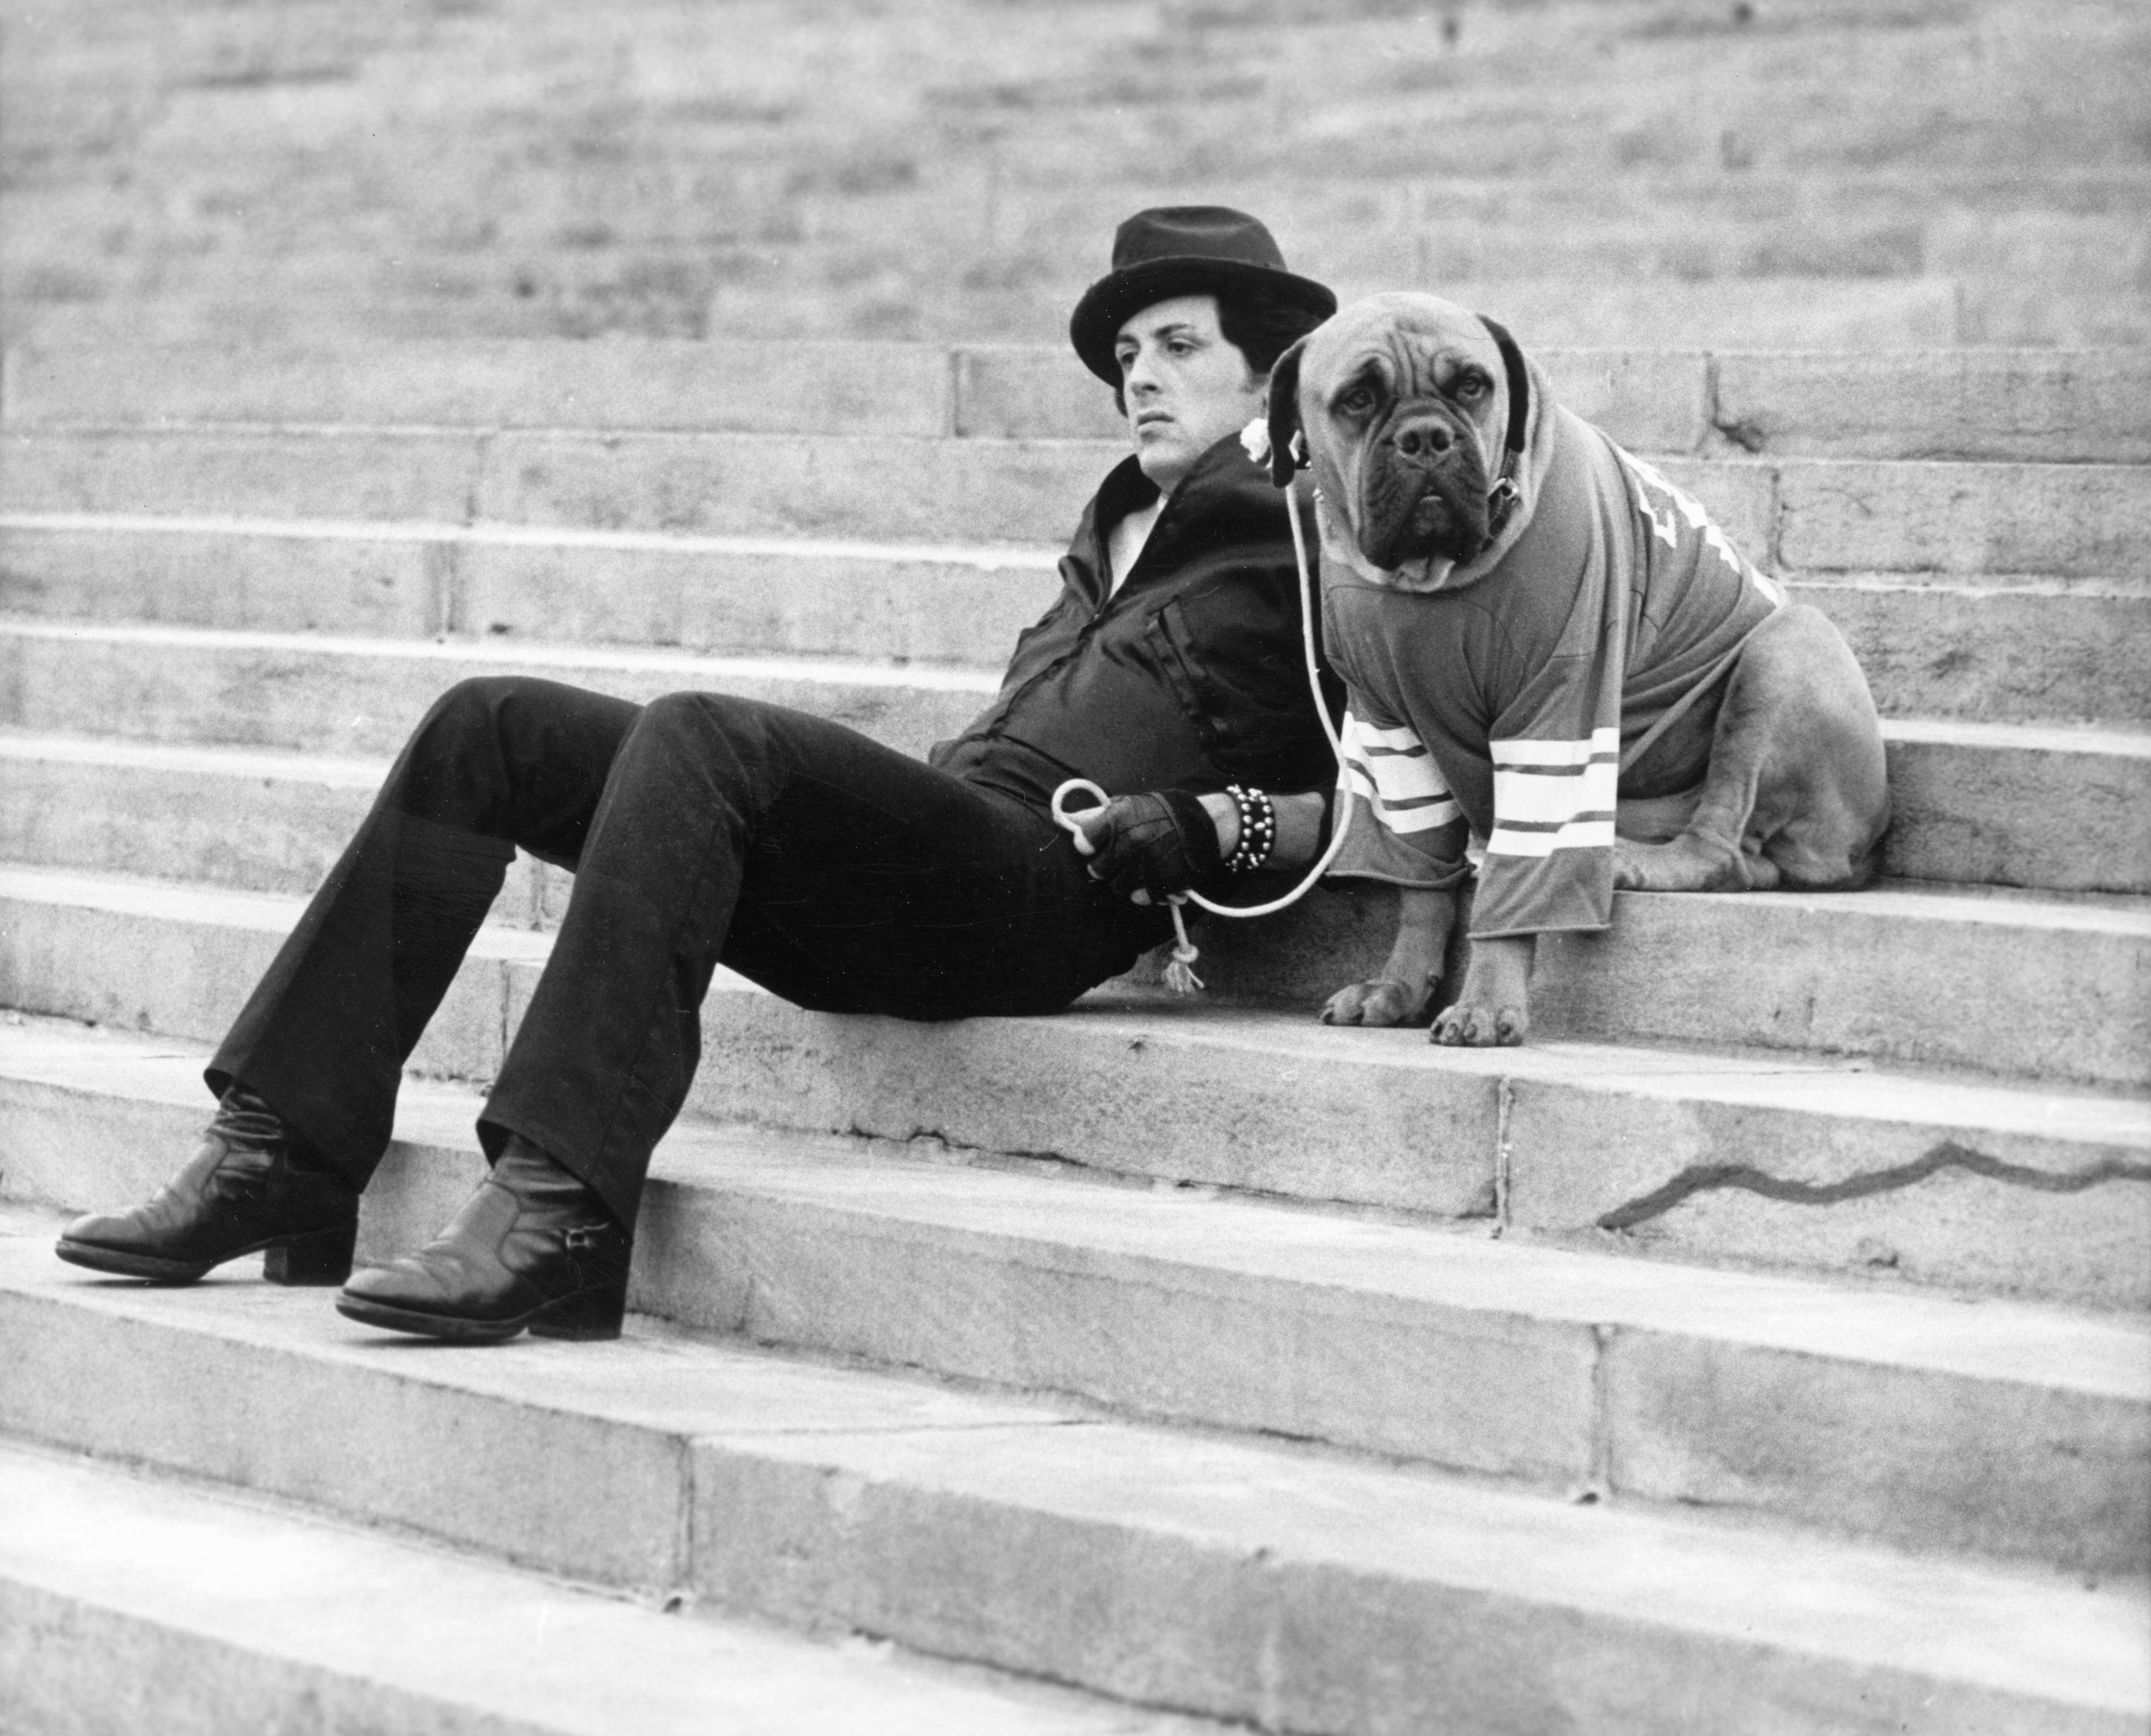 Image Credits: Getty Images / United Artists | American actor Sylvester Stallone sits on a staircase while holding the leash of a dog wearing a football jersey in a still from the film, 'Rocky,' directed by John G. Avildsen, 1976.